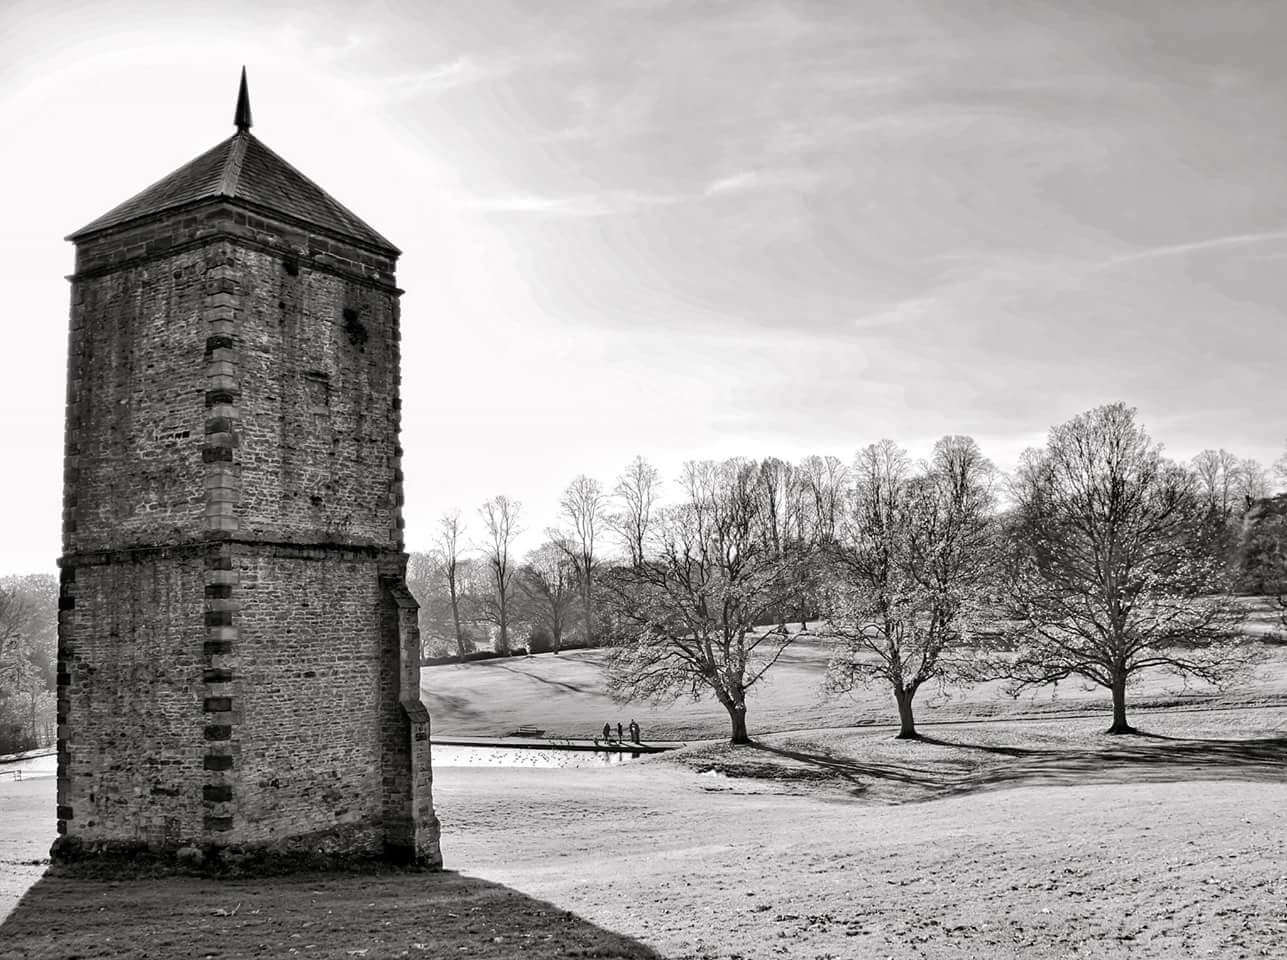 An 18th century brick tower standing in the middle of parkland